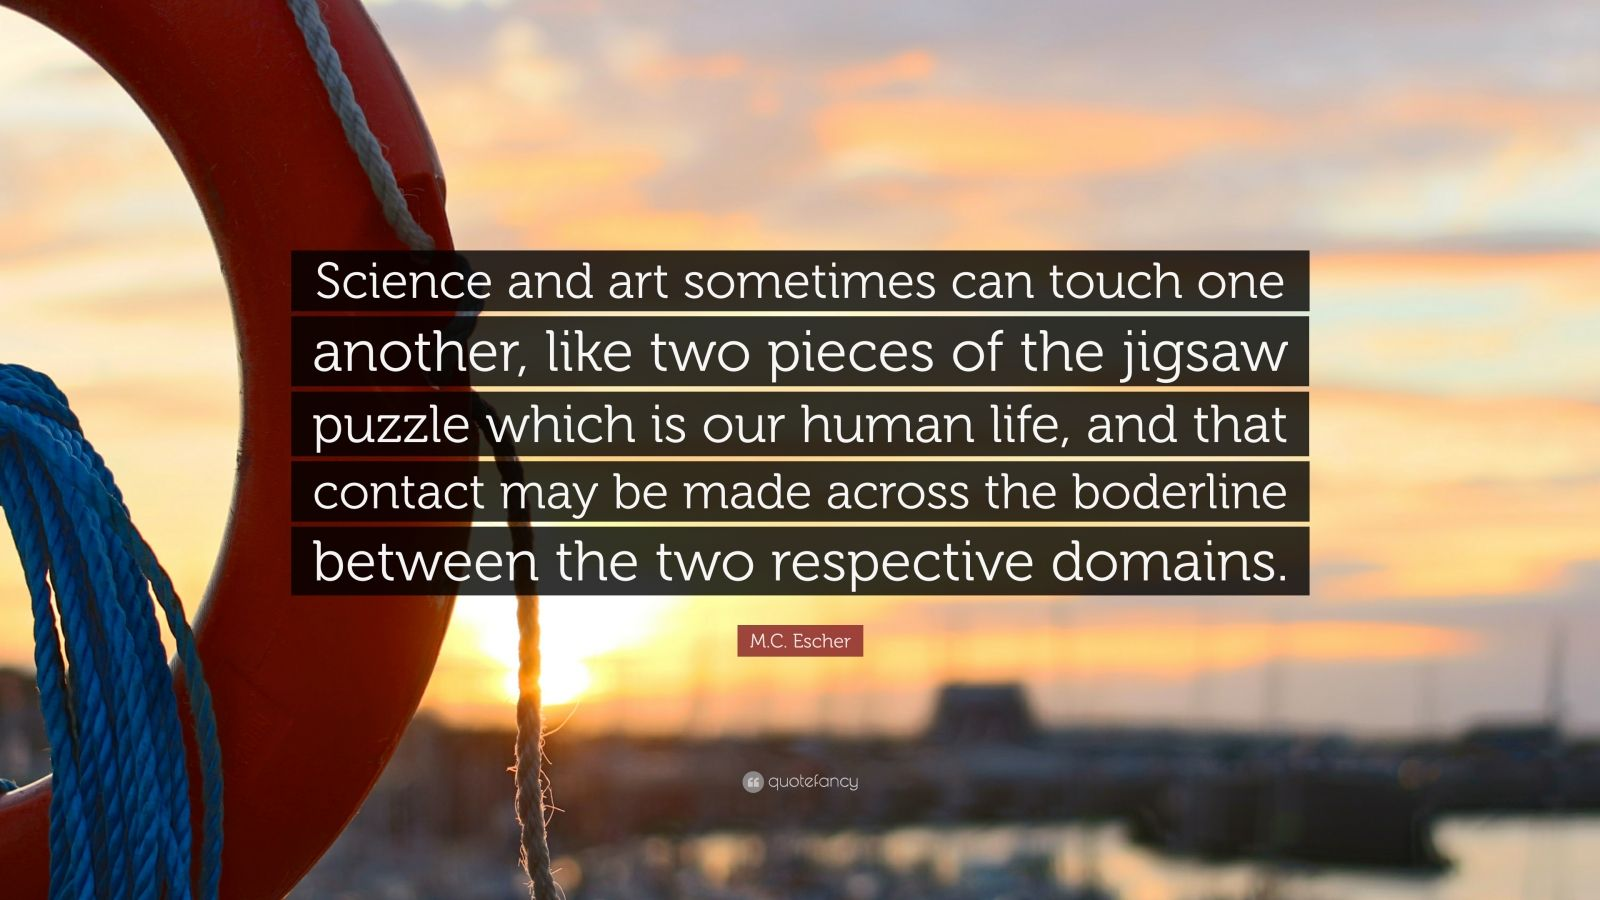 """M.C. Escher Quote: """"Science and art sometimes can touch one another, like two pieces of the jigsaw puzzle which is our human life, and that contact may be made across the boderline between the two respective domains."""""""